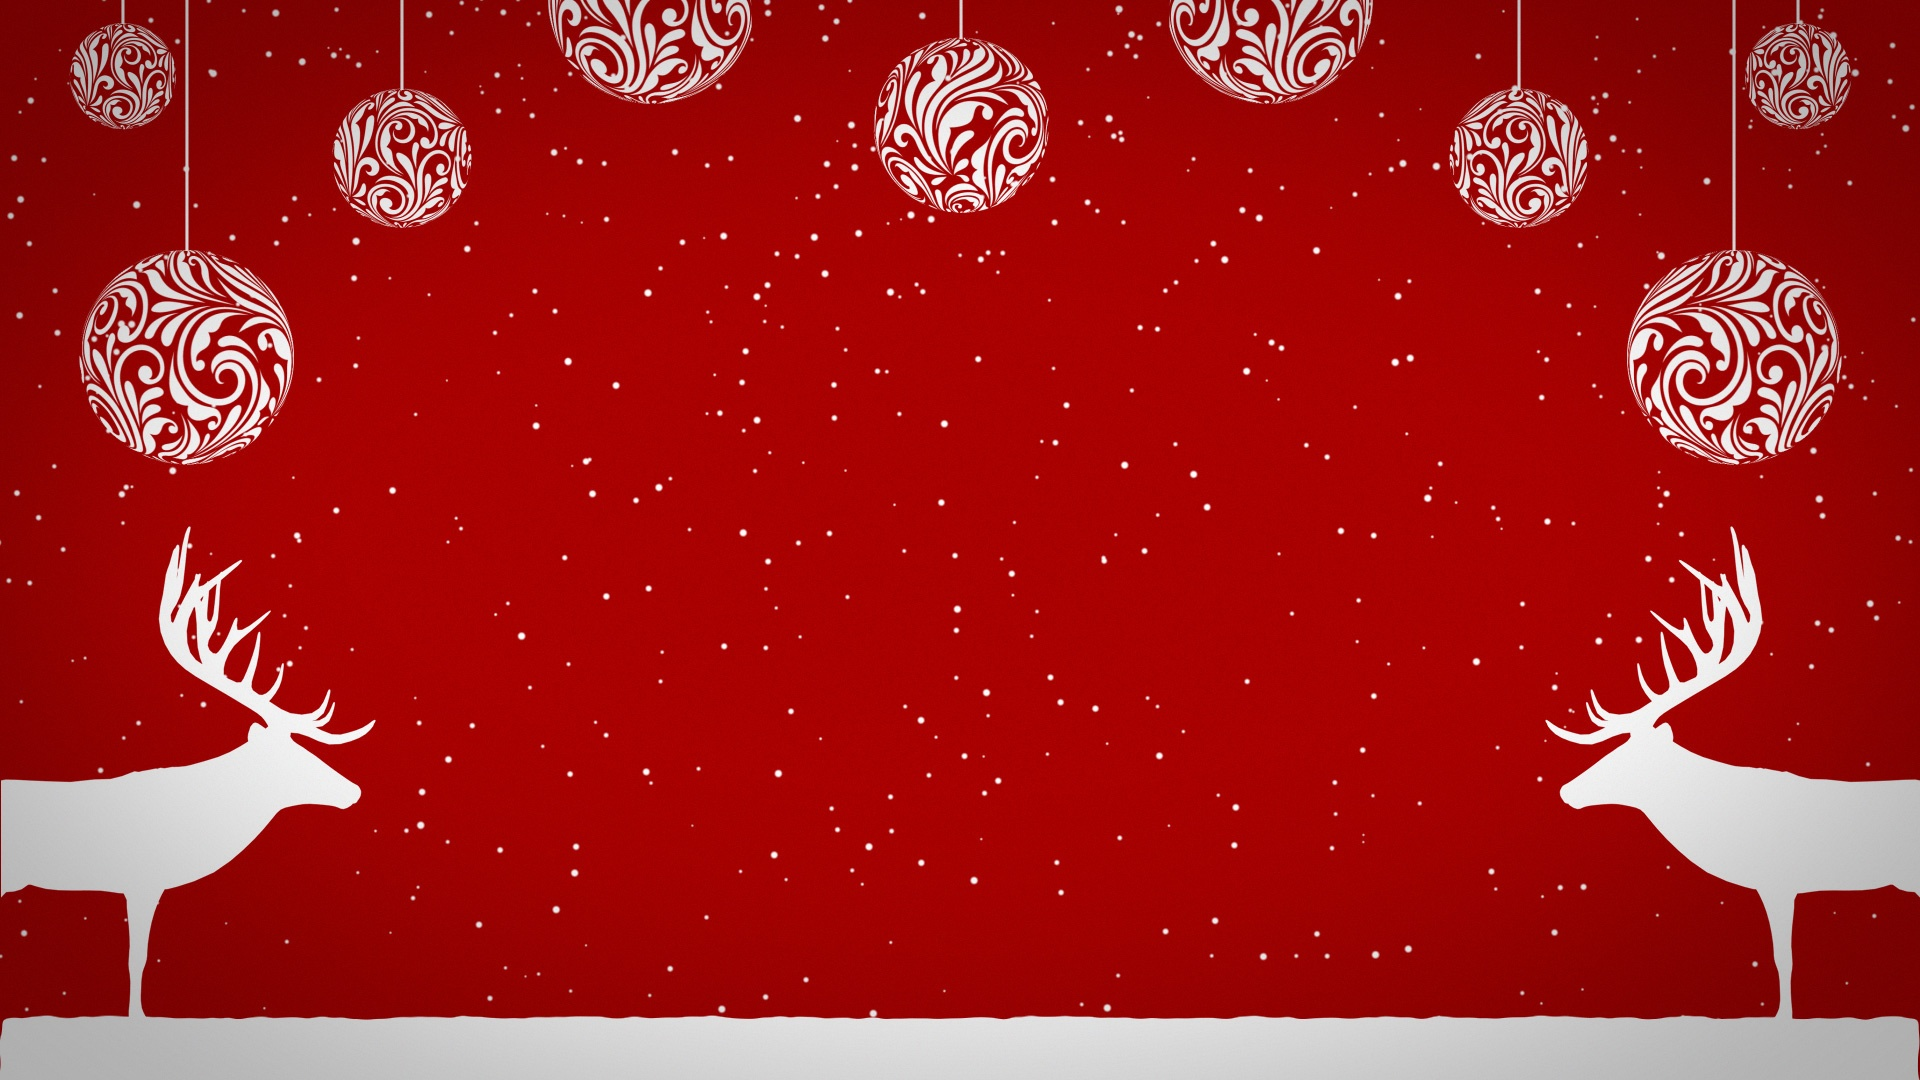 Falling Snow Wallpaper Note 3 Christmas Reindeer And Baubles Personalised Animations